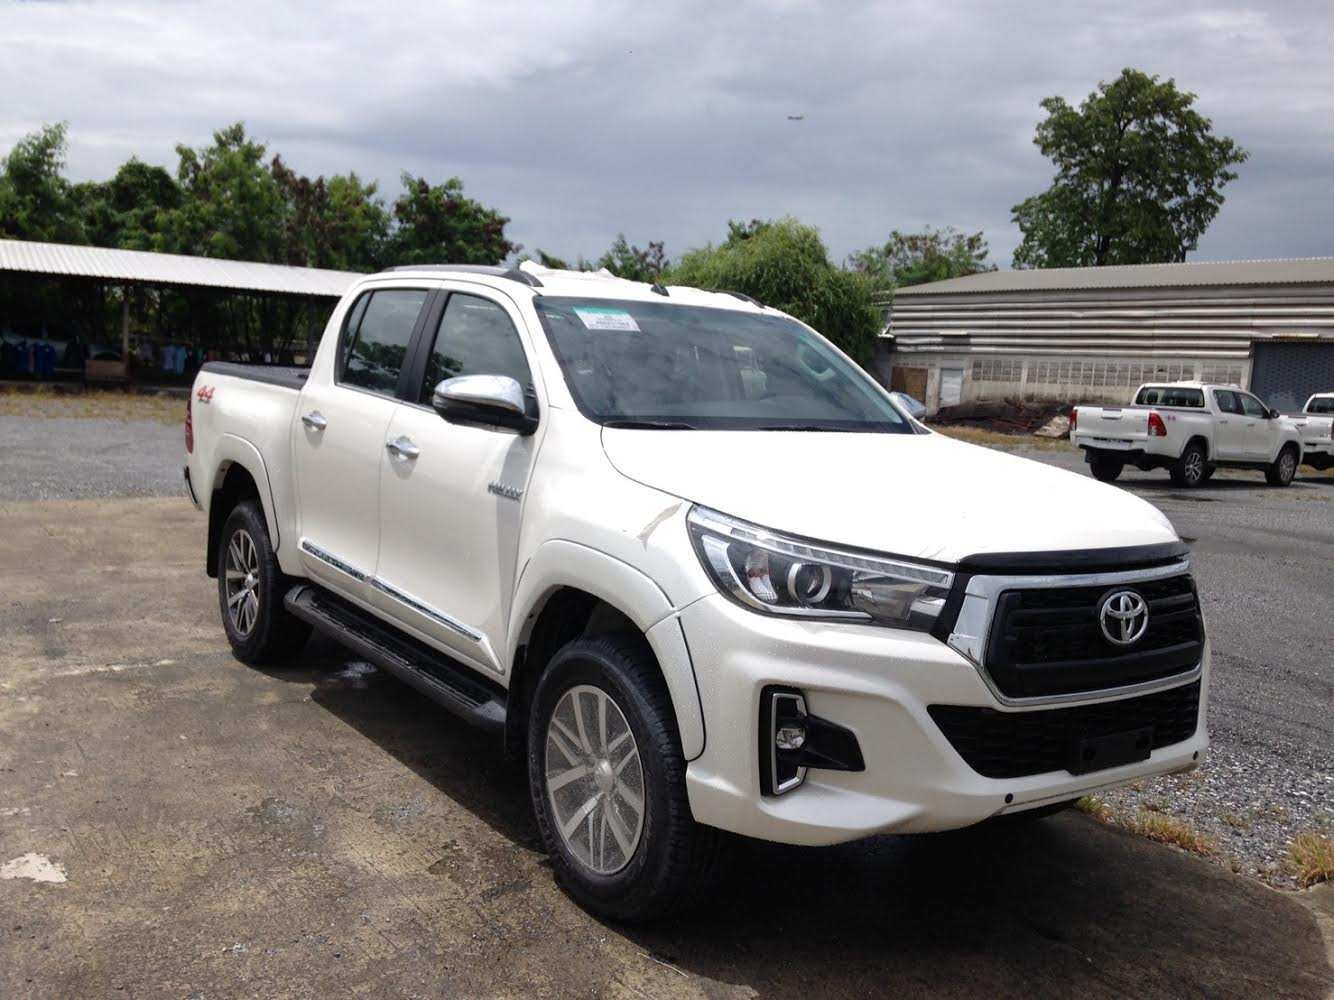 58 Best Review 2019 Toyota Hilux Facelift Spy Shoot with 2019 Toyota Hilux Facelift